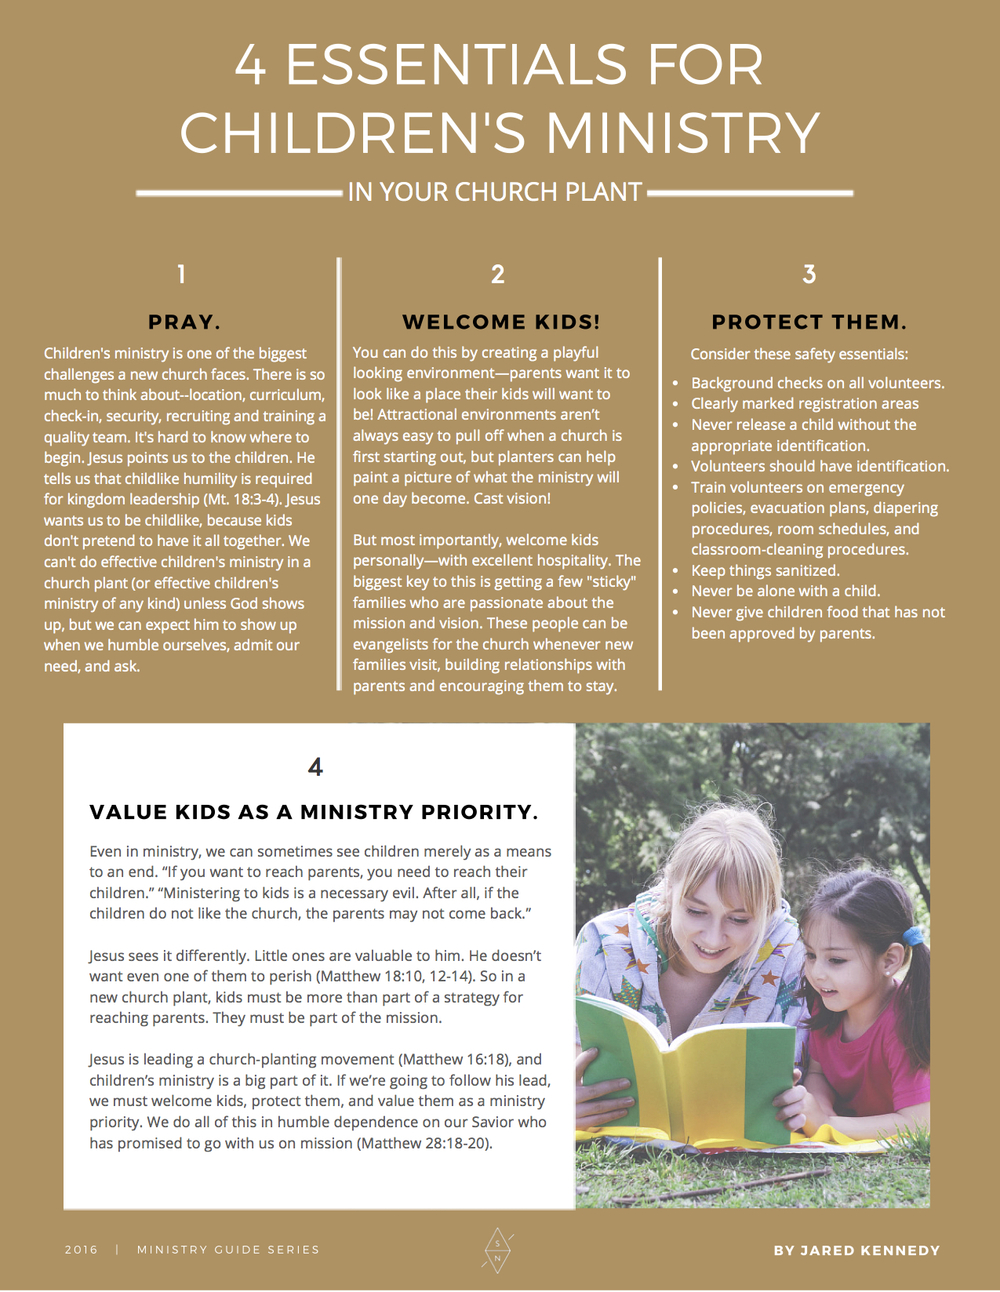 4 Essentials for Children's Ministry In Your Church Plant By Jared Kennedy